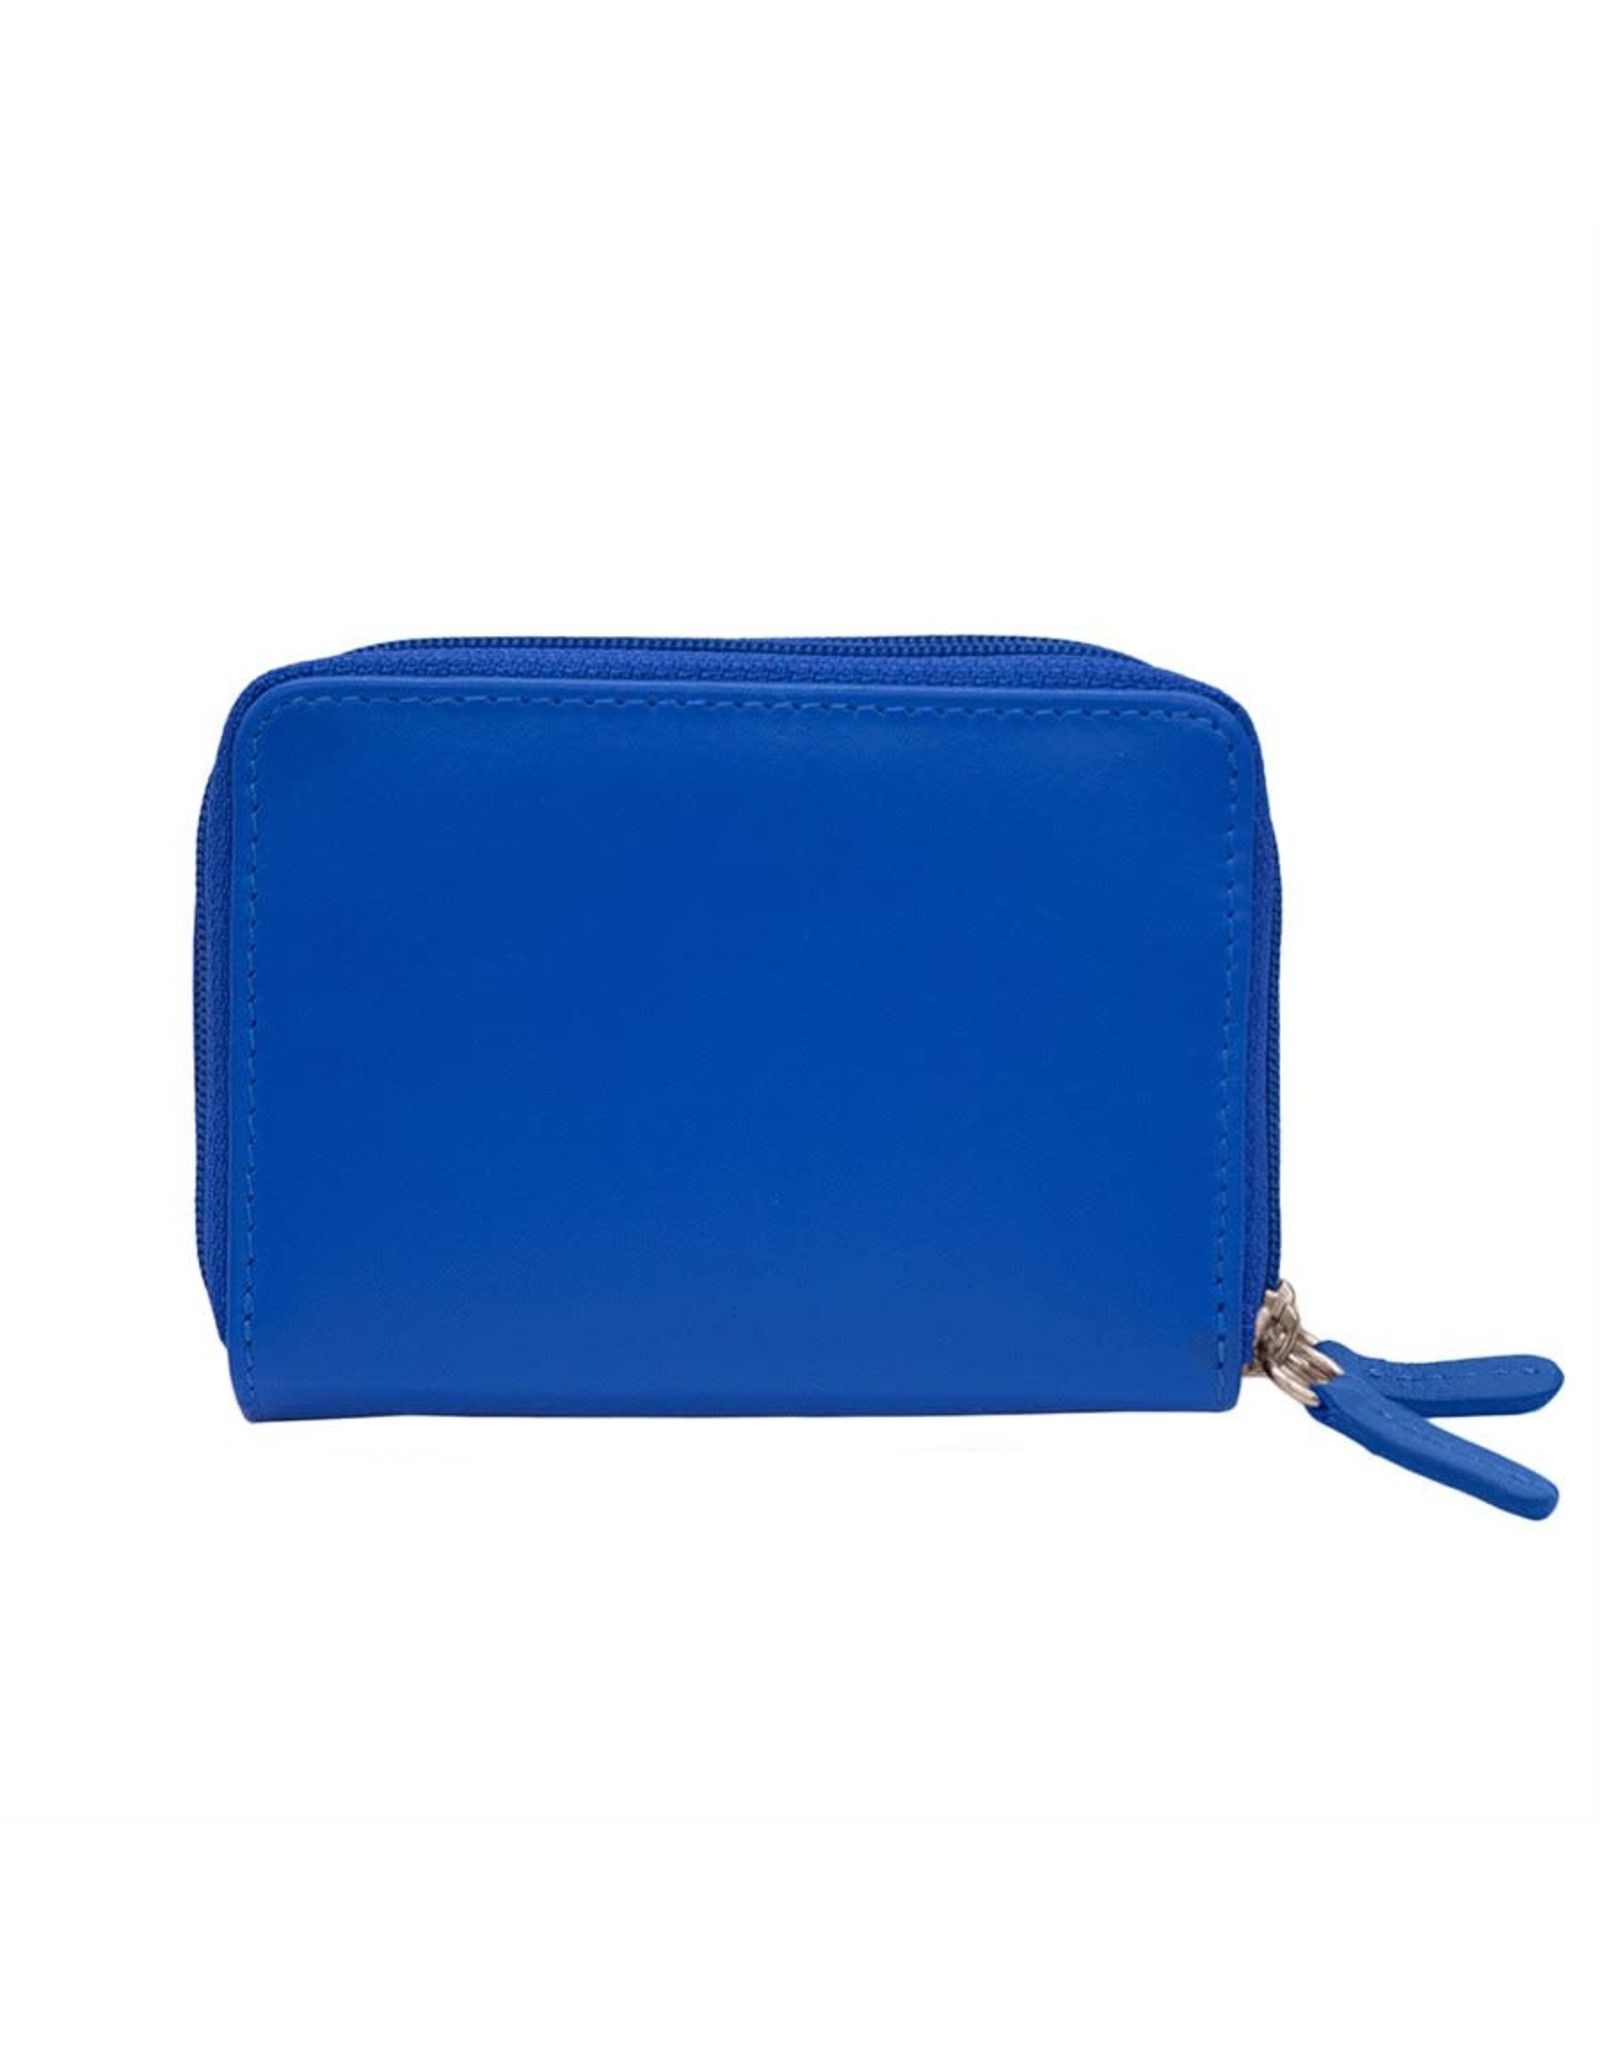 Leather Handbags and Accessories 6714 Cobalt - RFID Double Zip Accordion Card Holder